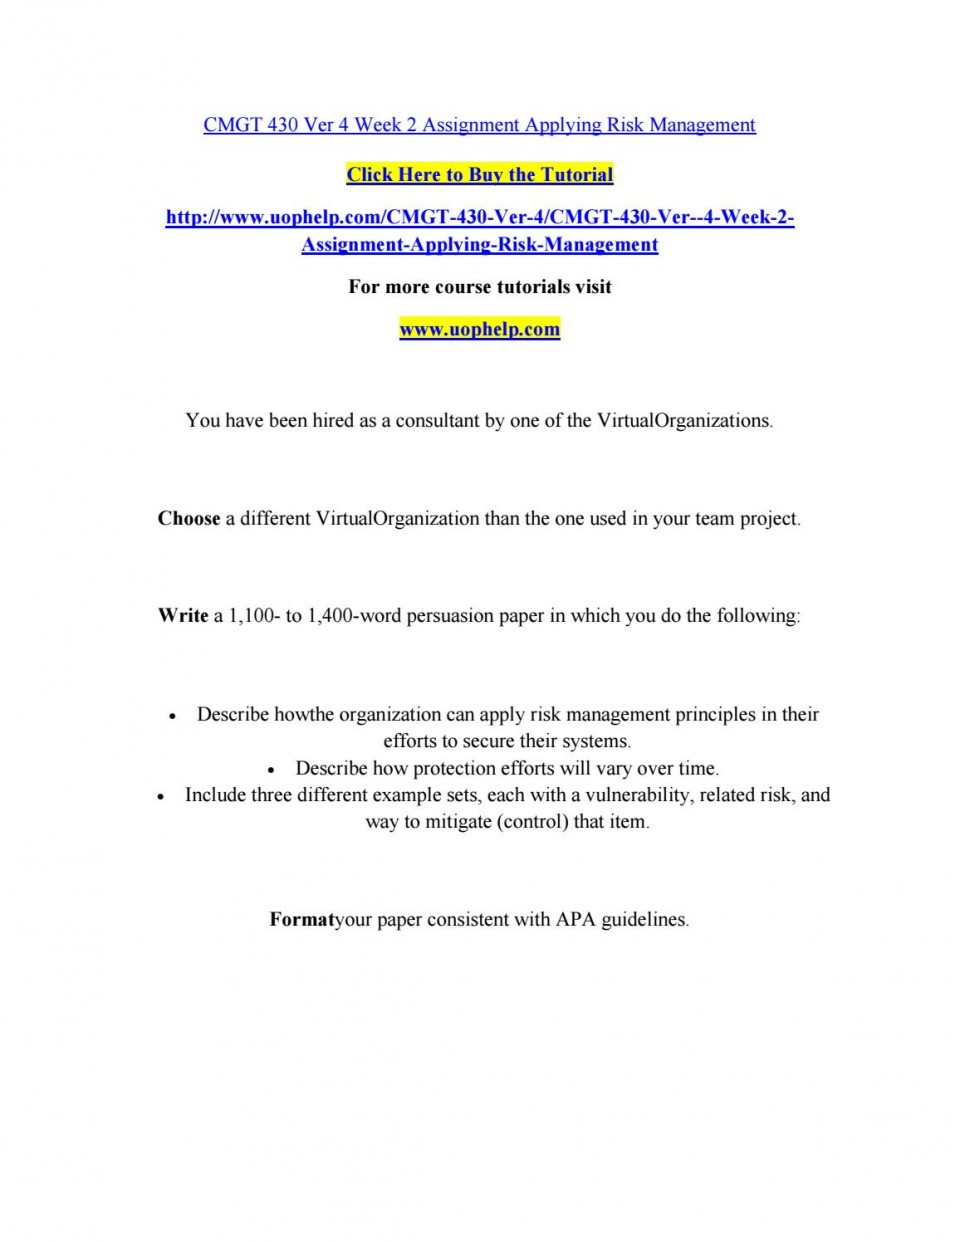 005 Parts Of Research Paper Pdf Page 1 Staggering Preliminary A Chapter 1-5 960